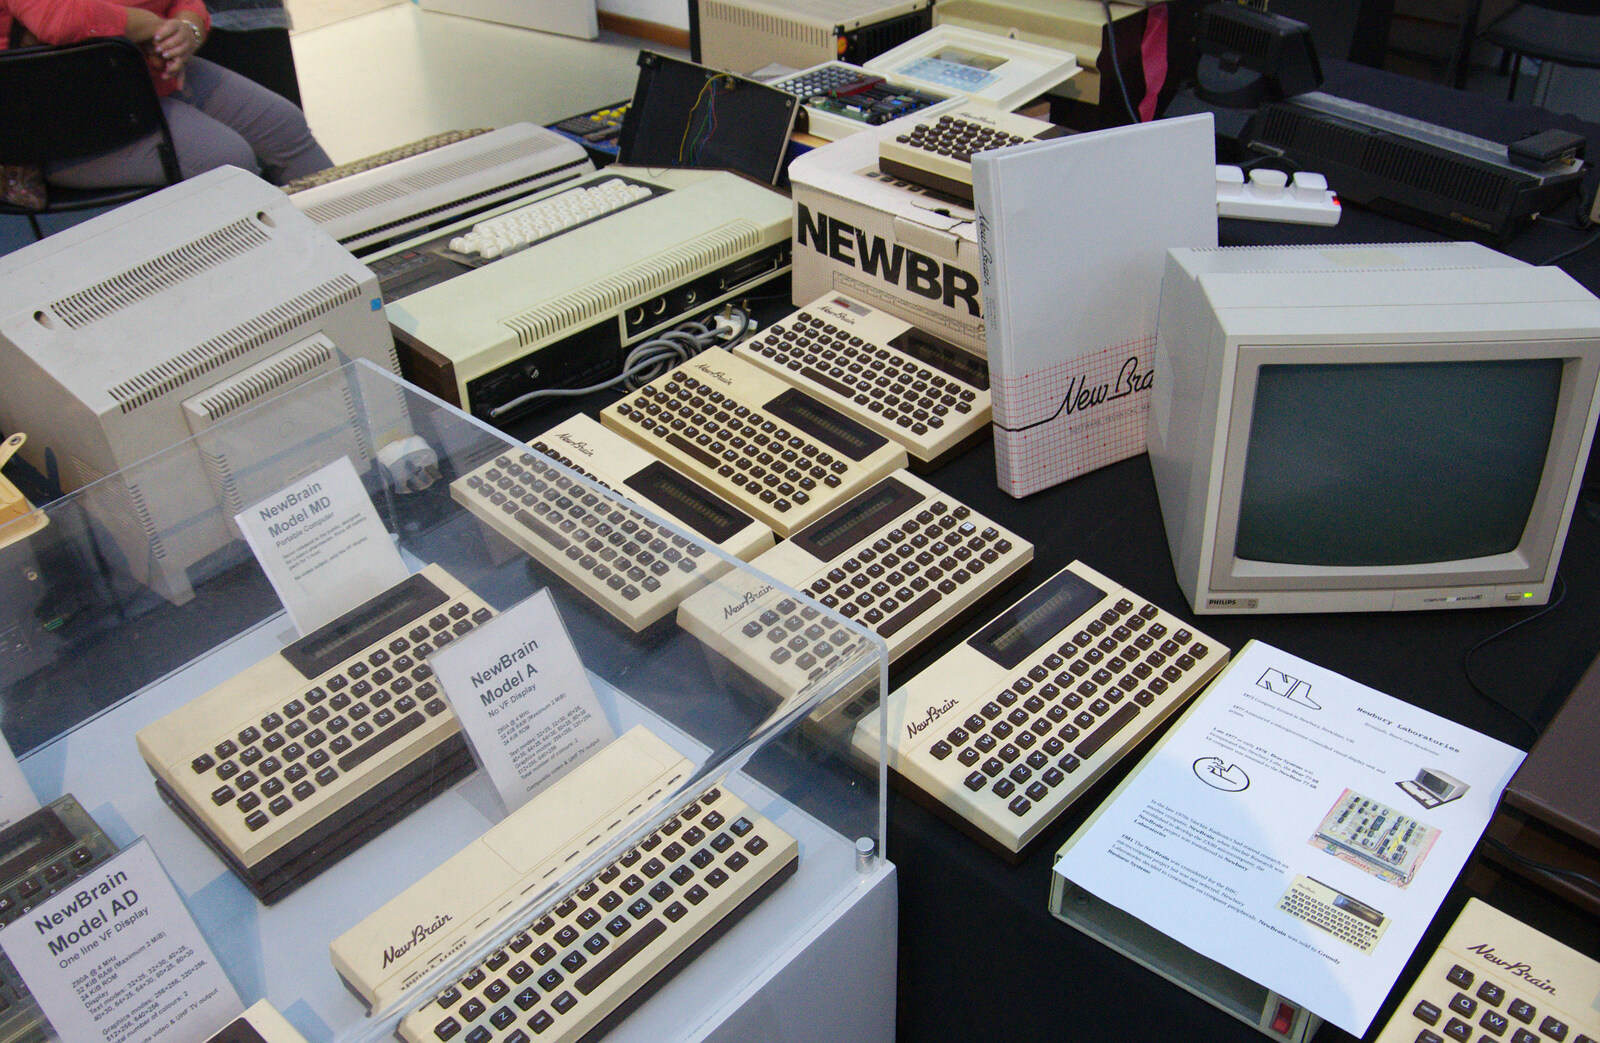 Image showing A collection of Newbrains at the Centre for Computing History in Cambridge, 2019